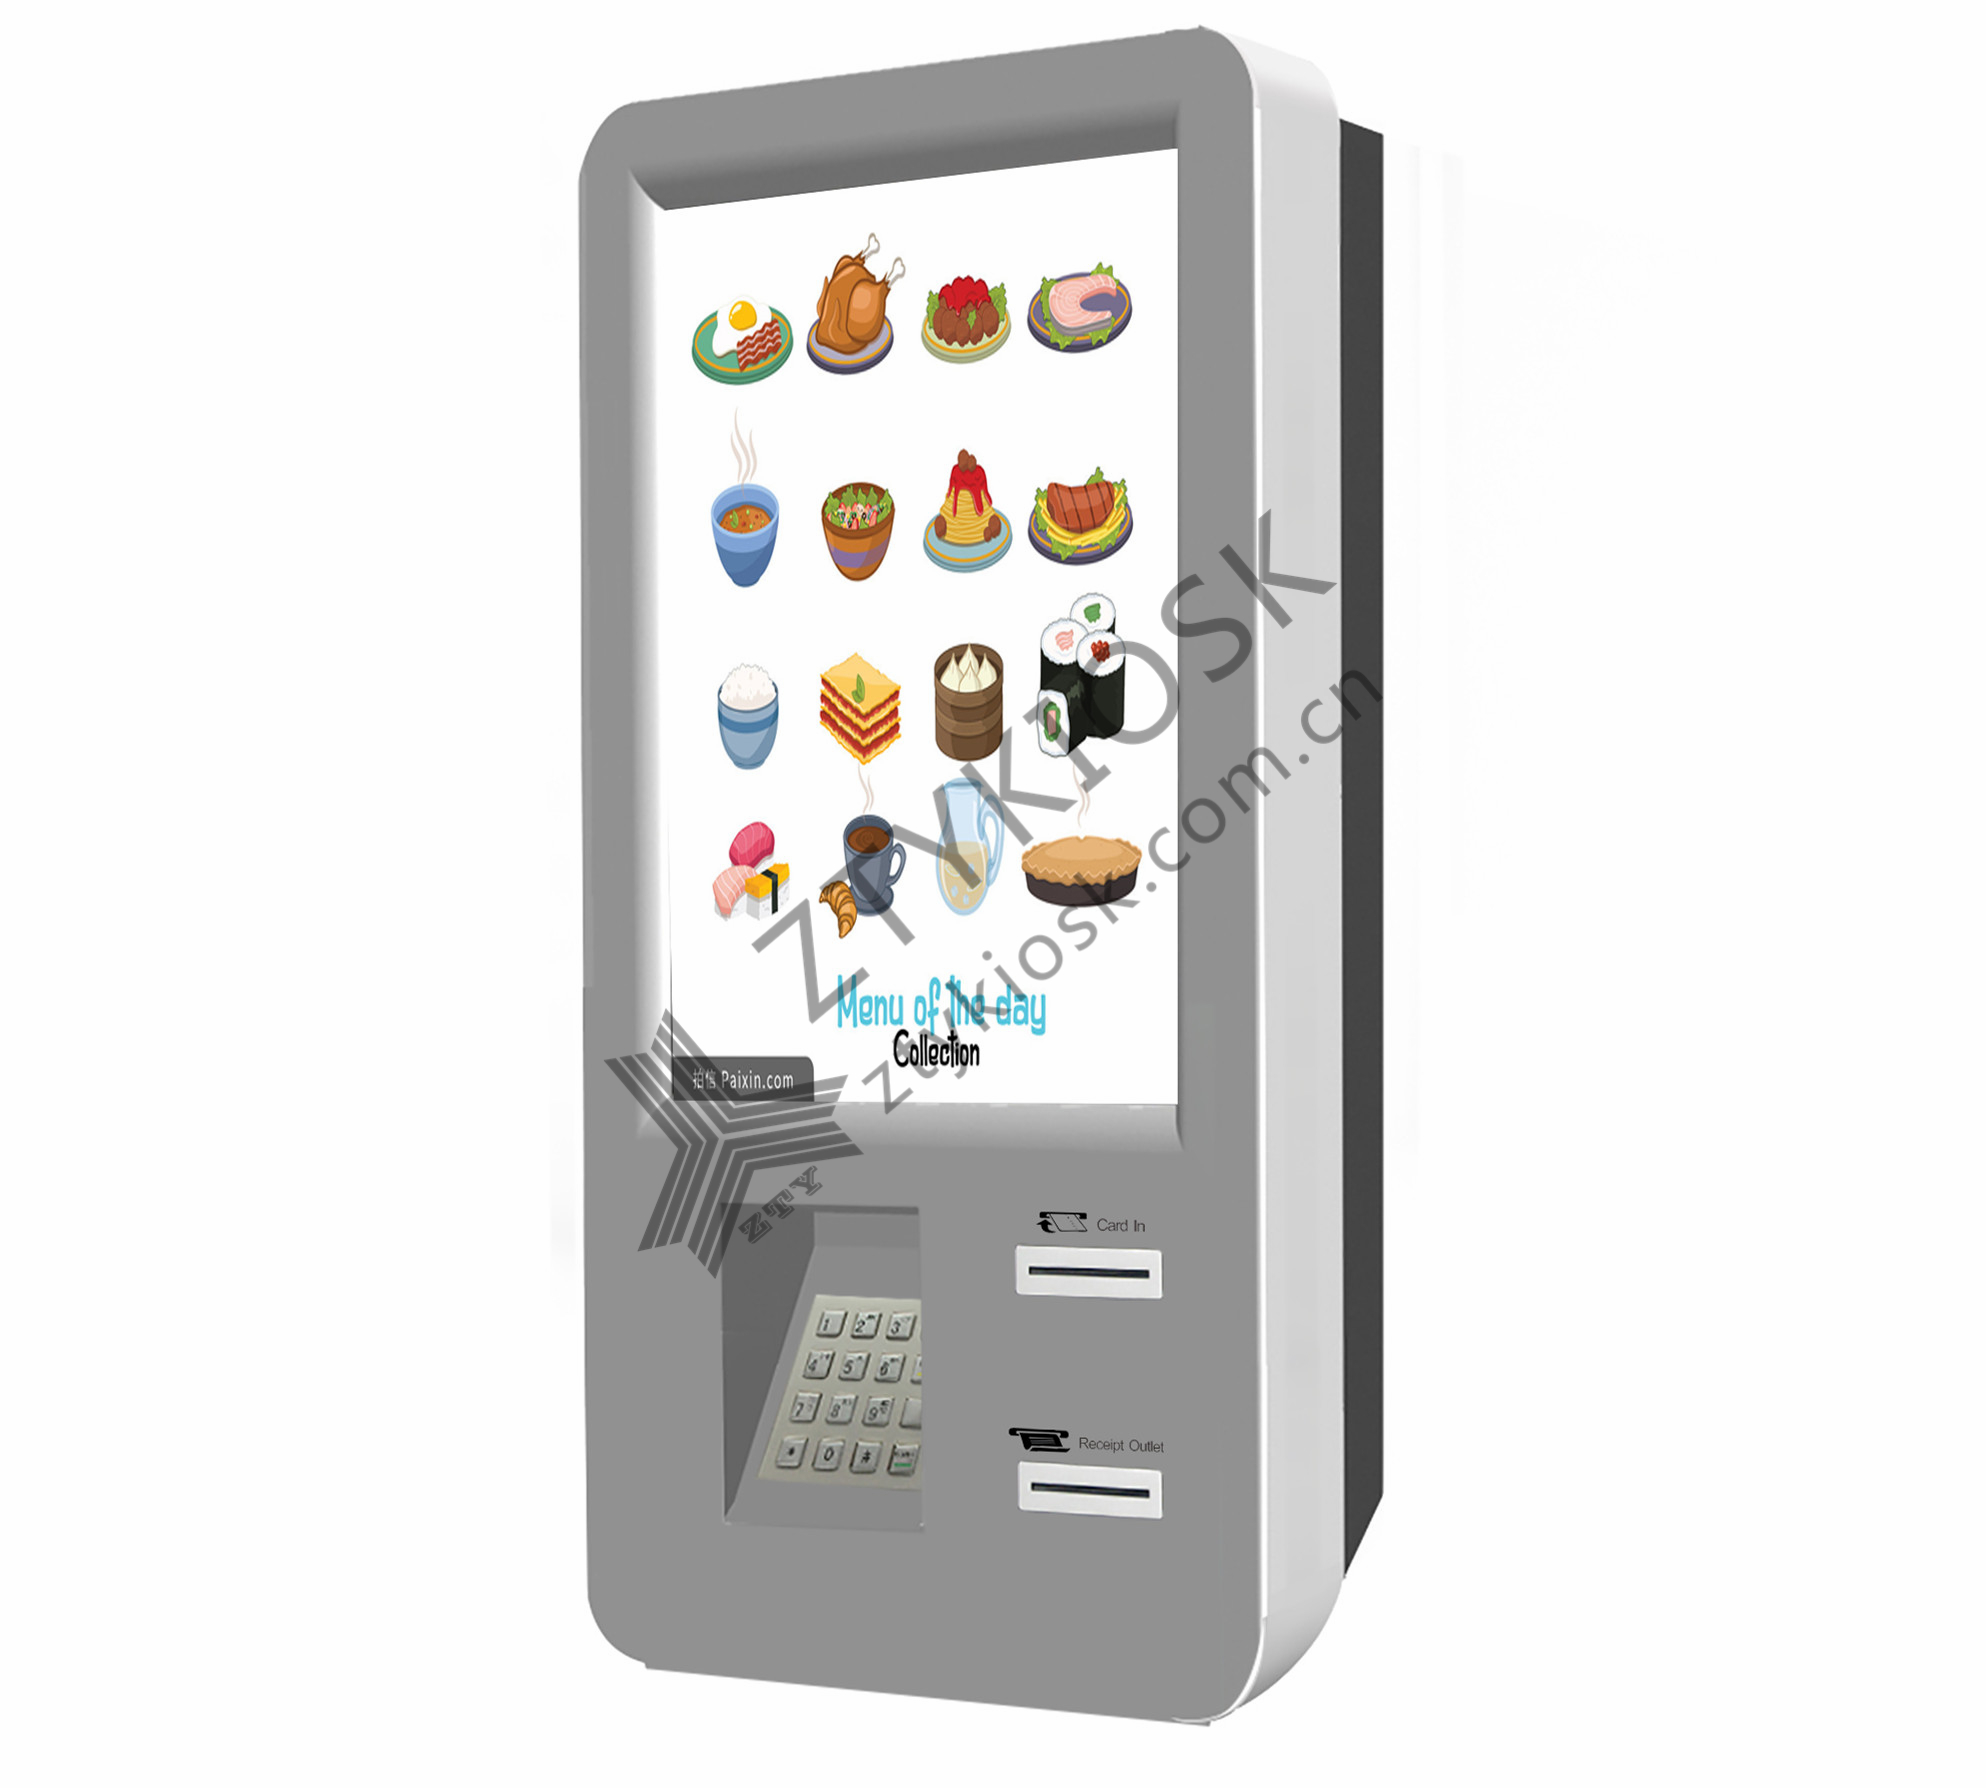 Wall-Mount Restaurant Food-Ordering Kiosk